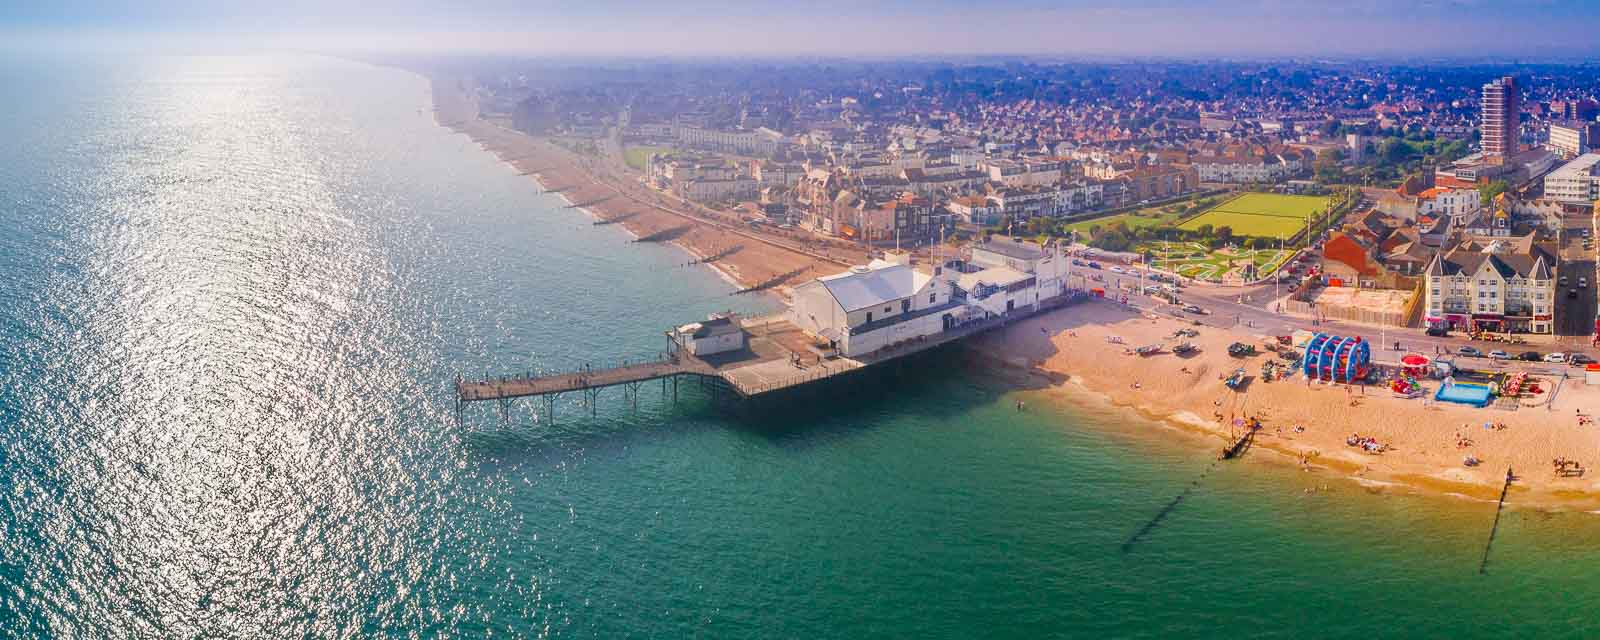 Panoramic photo of the pier in Bognor Regis, West Sussex ©Prestige Pictures